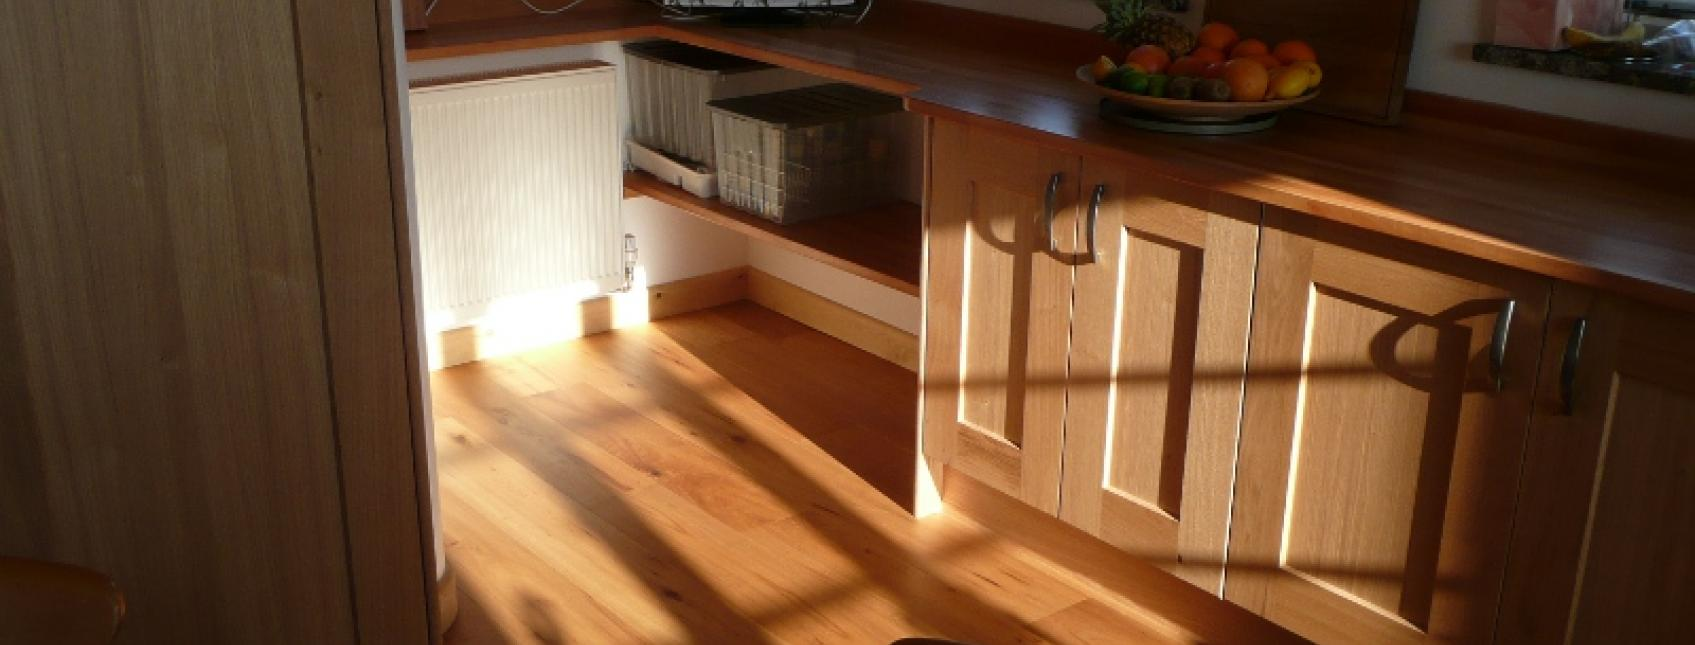 small coyttage wood flooring in kitchen